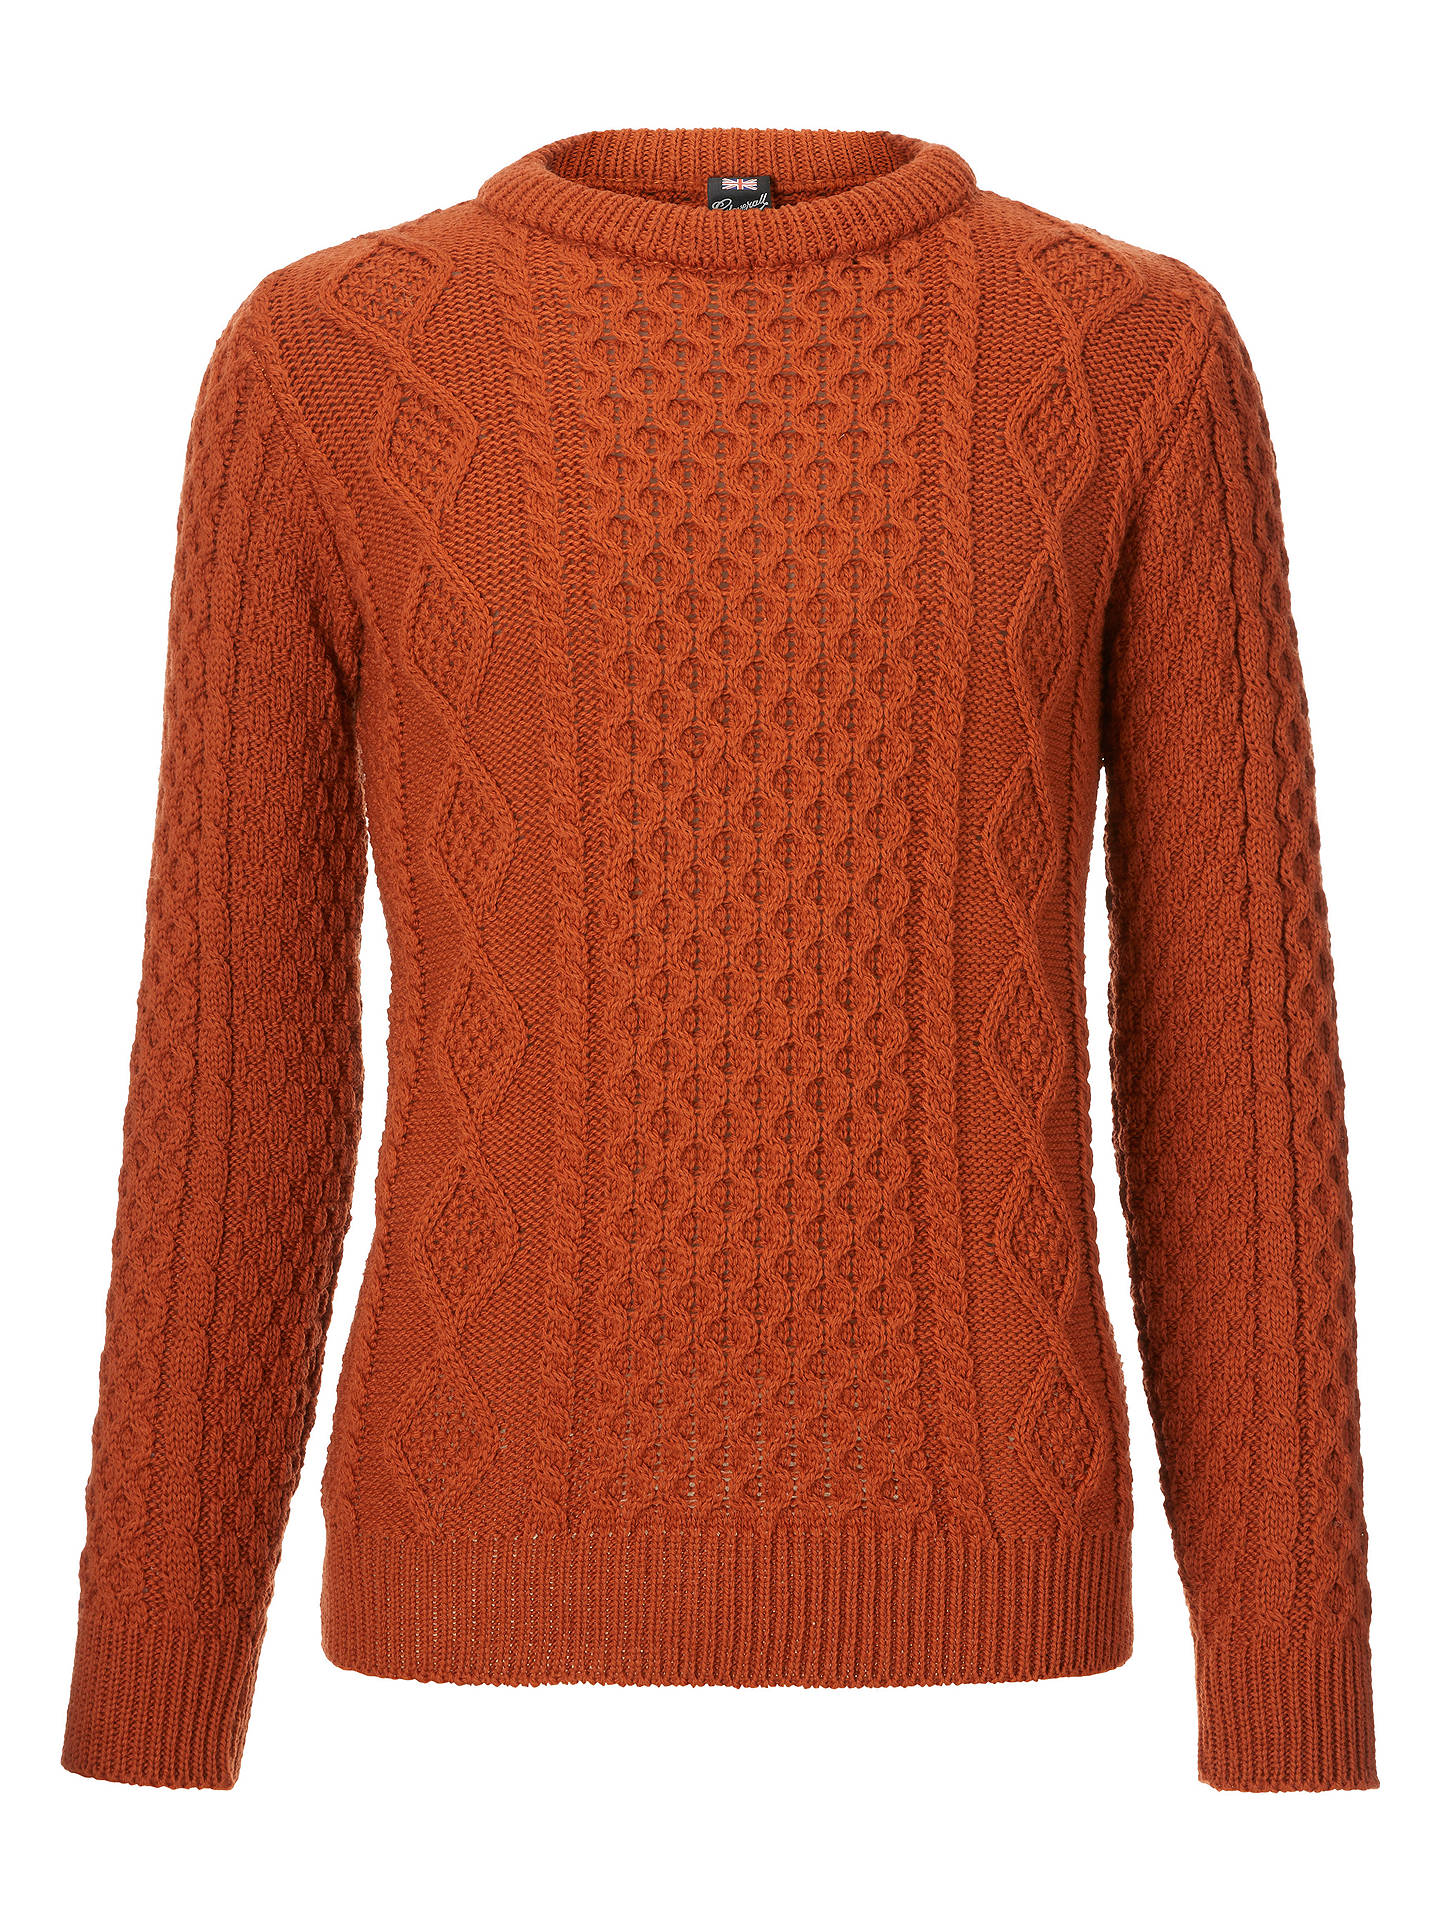 BuyGloverall for John Lewis & Partners Aran Cable Knit Jumper, Red, M Online at johnlewis.com